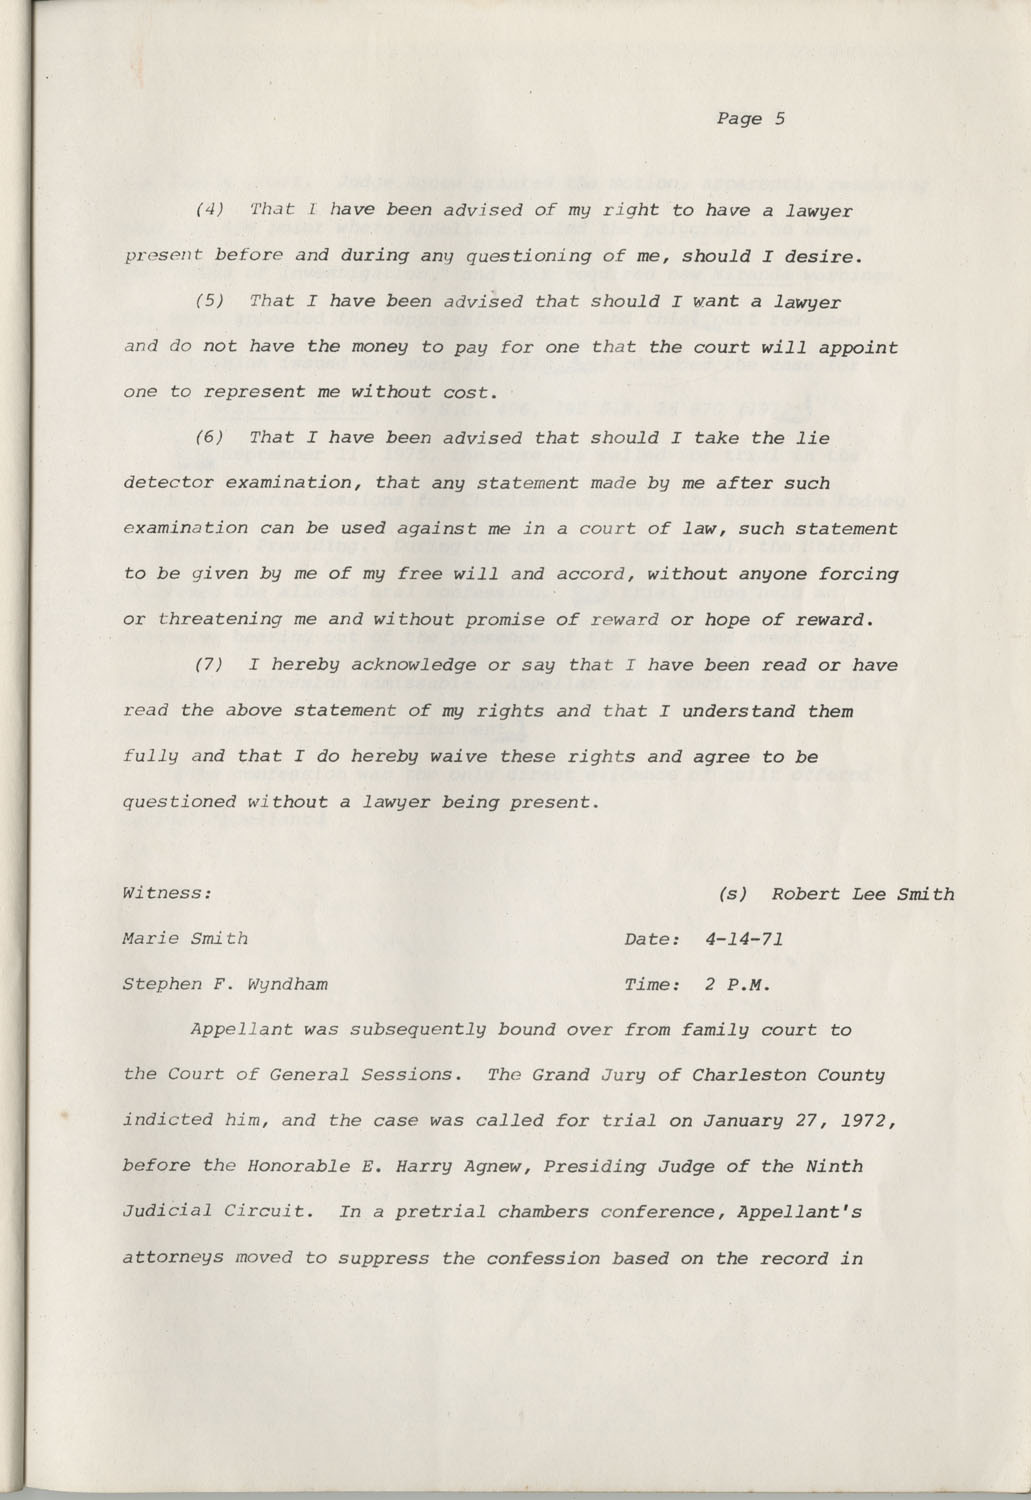 State of South Carolina vs. Robert Lee Smith, Brief of Appellant, Page 5